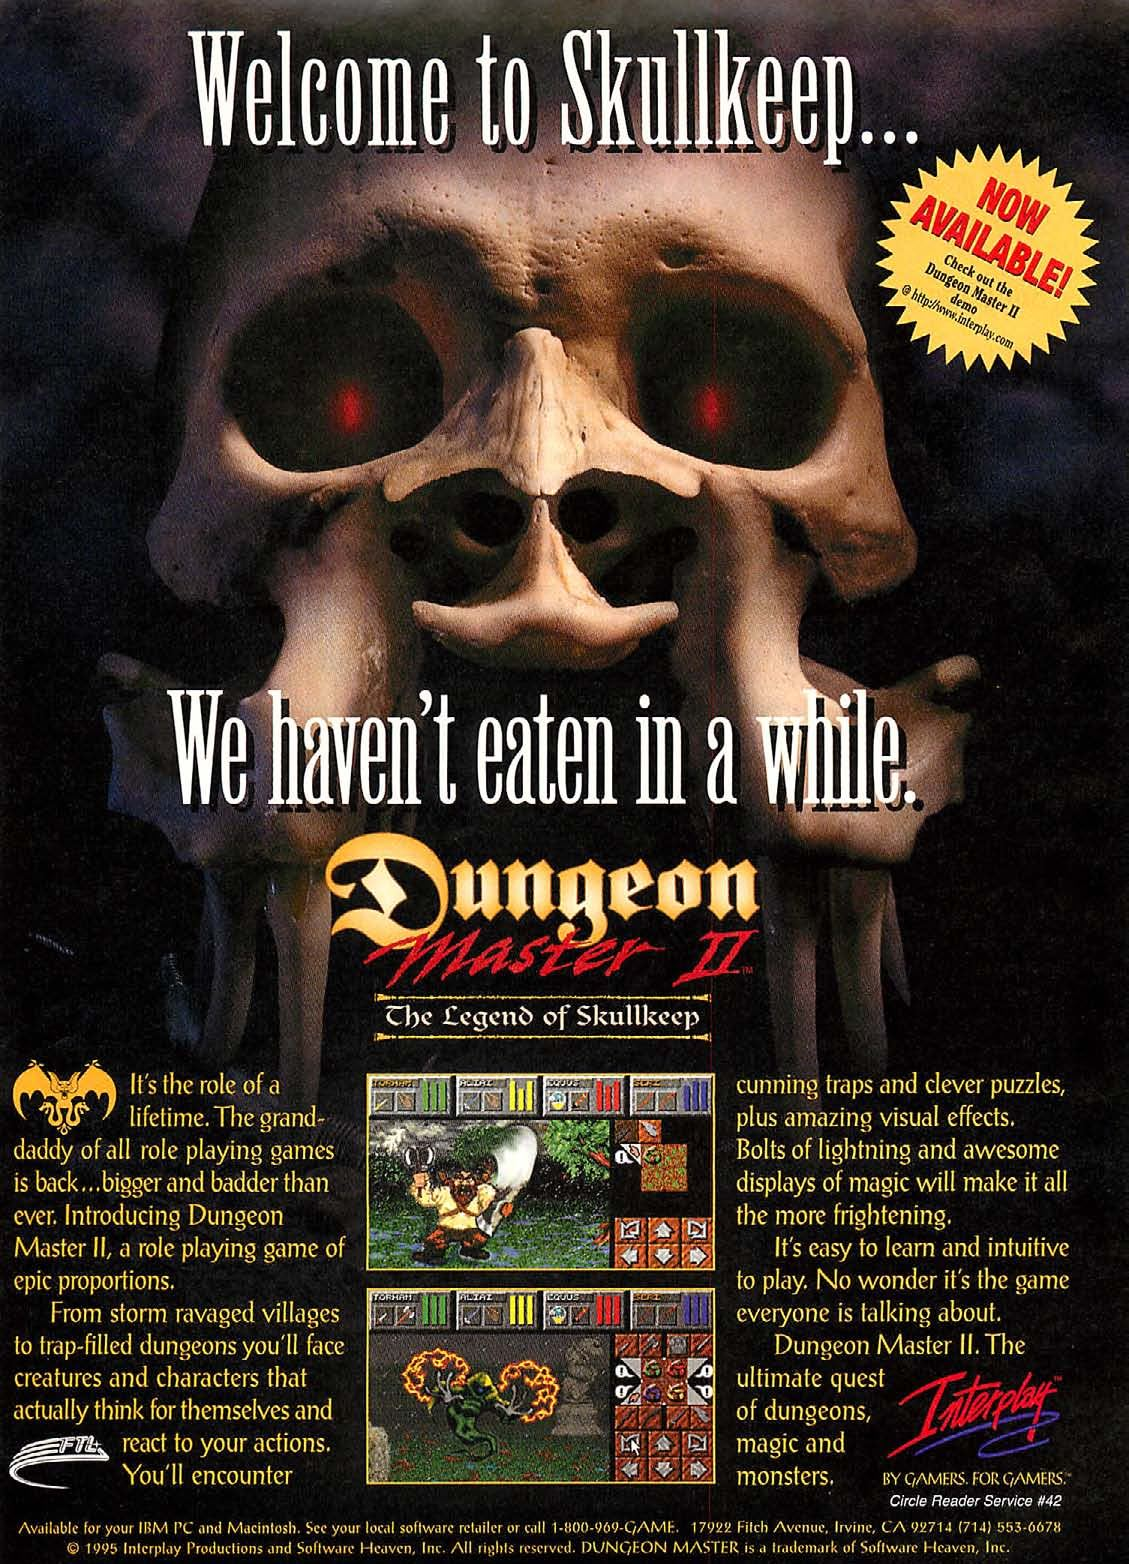 Dungeon Master II for PC-Macintosh Advertisement published in American magazine 'Computer Gaming World', Issue #134 September 1995, Page 57